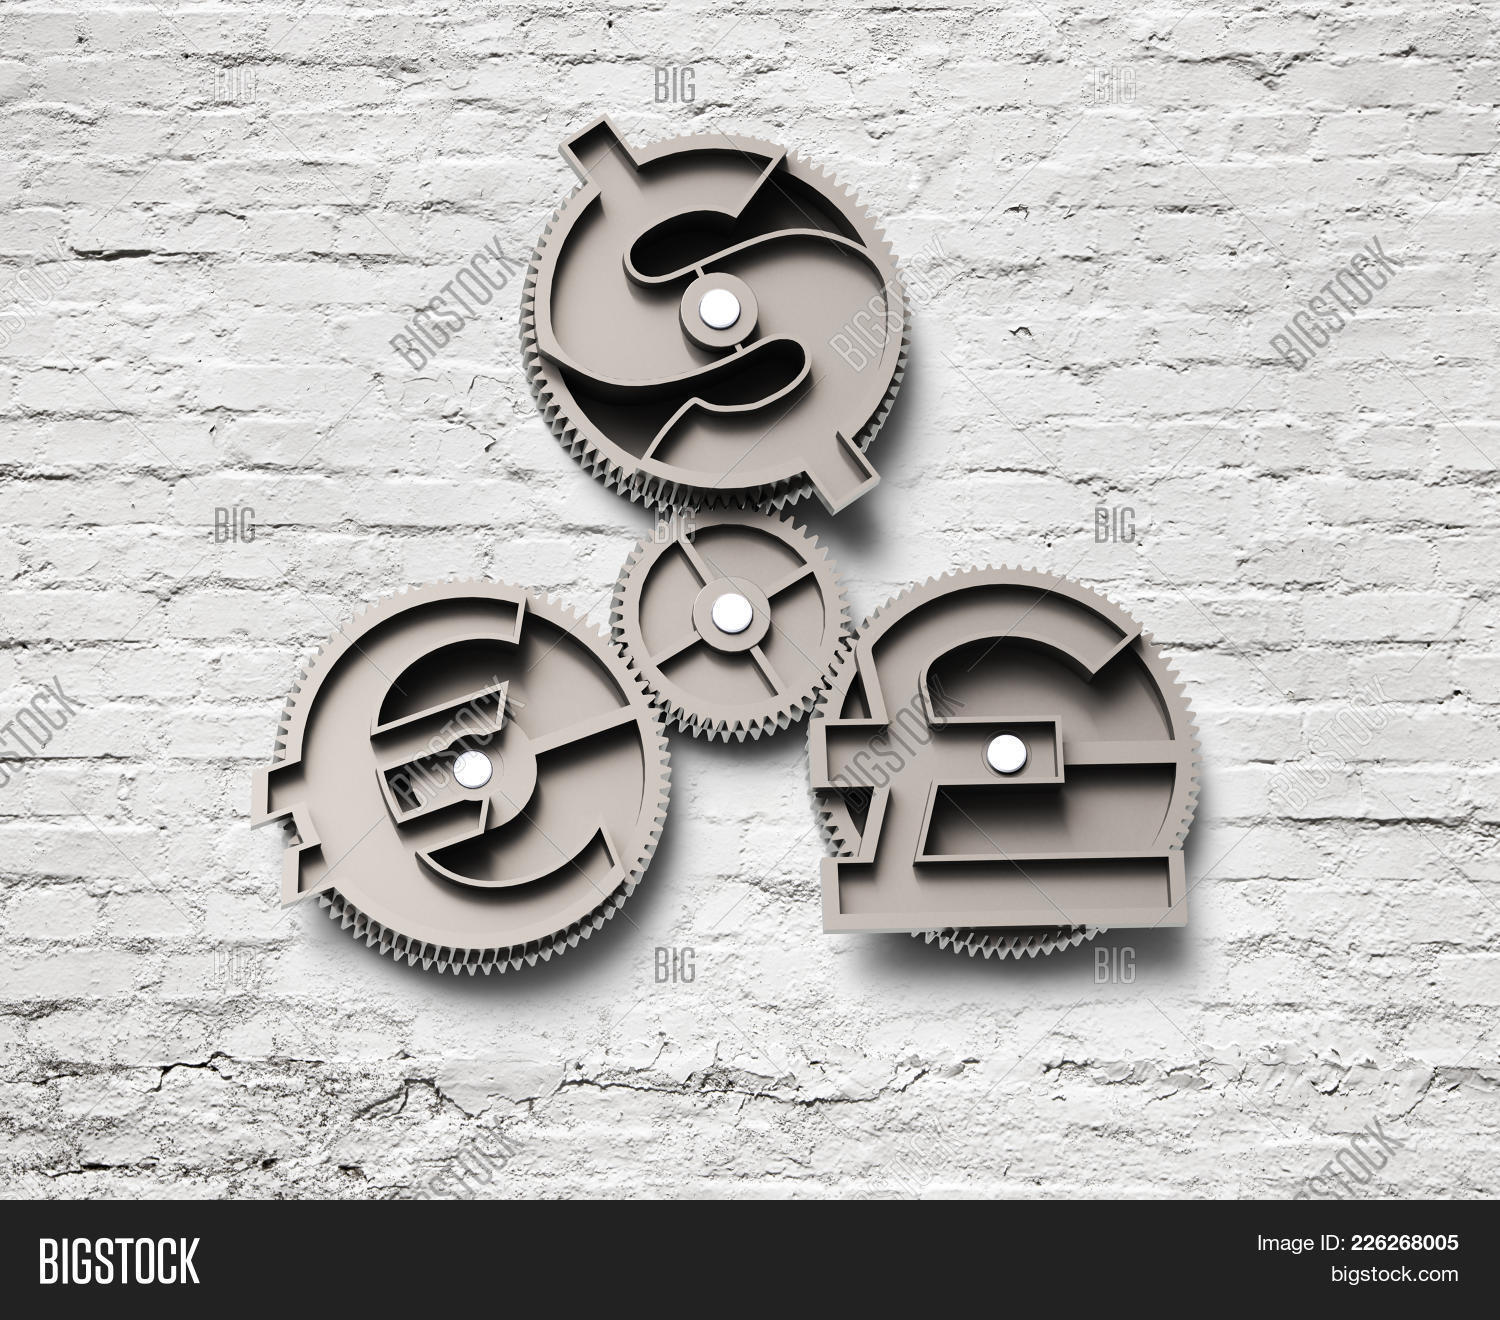 Gears Dollar Sign Pound Euro Image Photo Bigstock